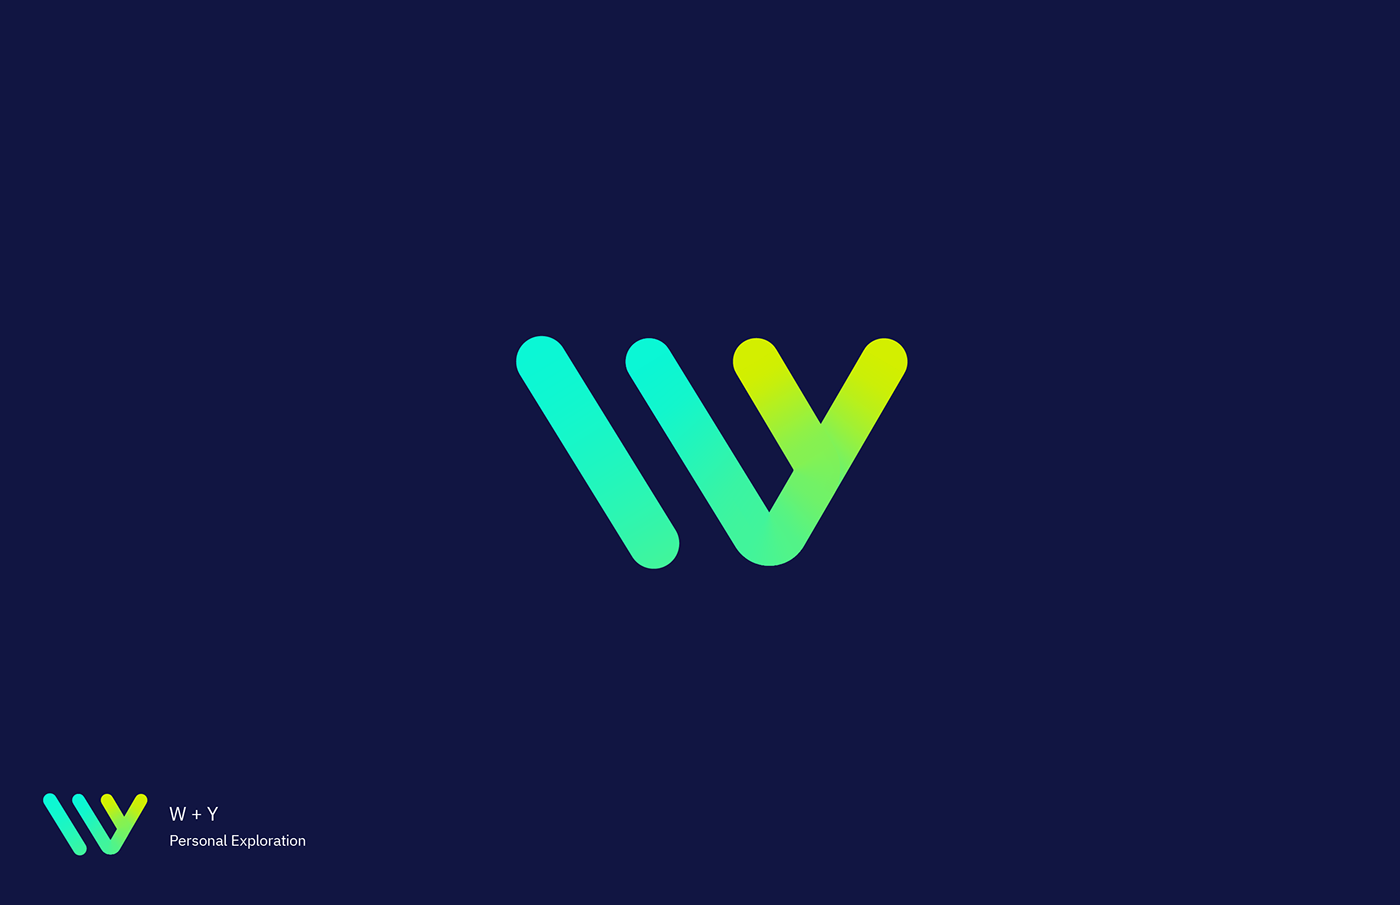 Personal exploration for monogram W + Y